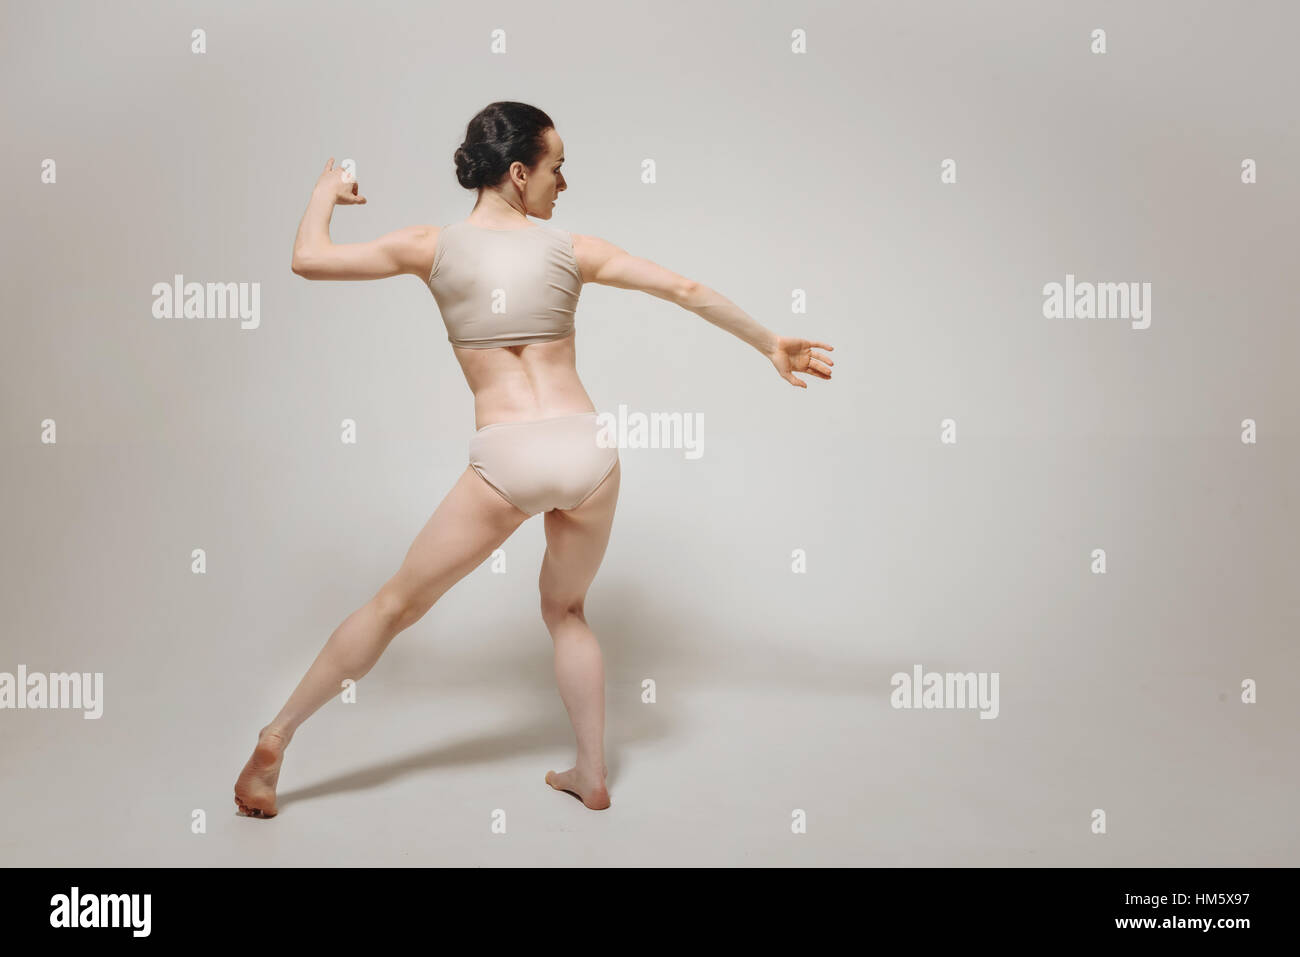 Flexible young ballet dancer performing near the white wall - Stock Image